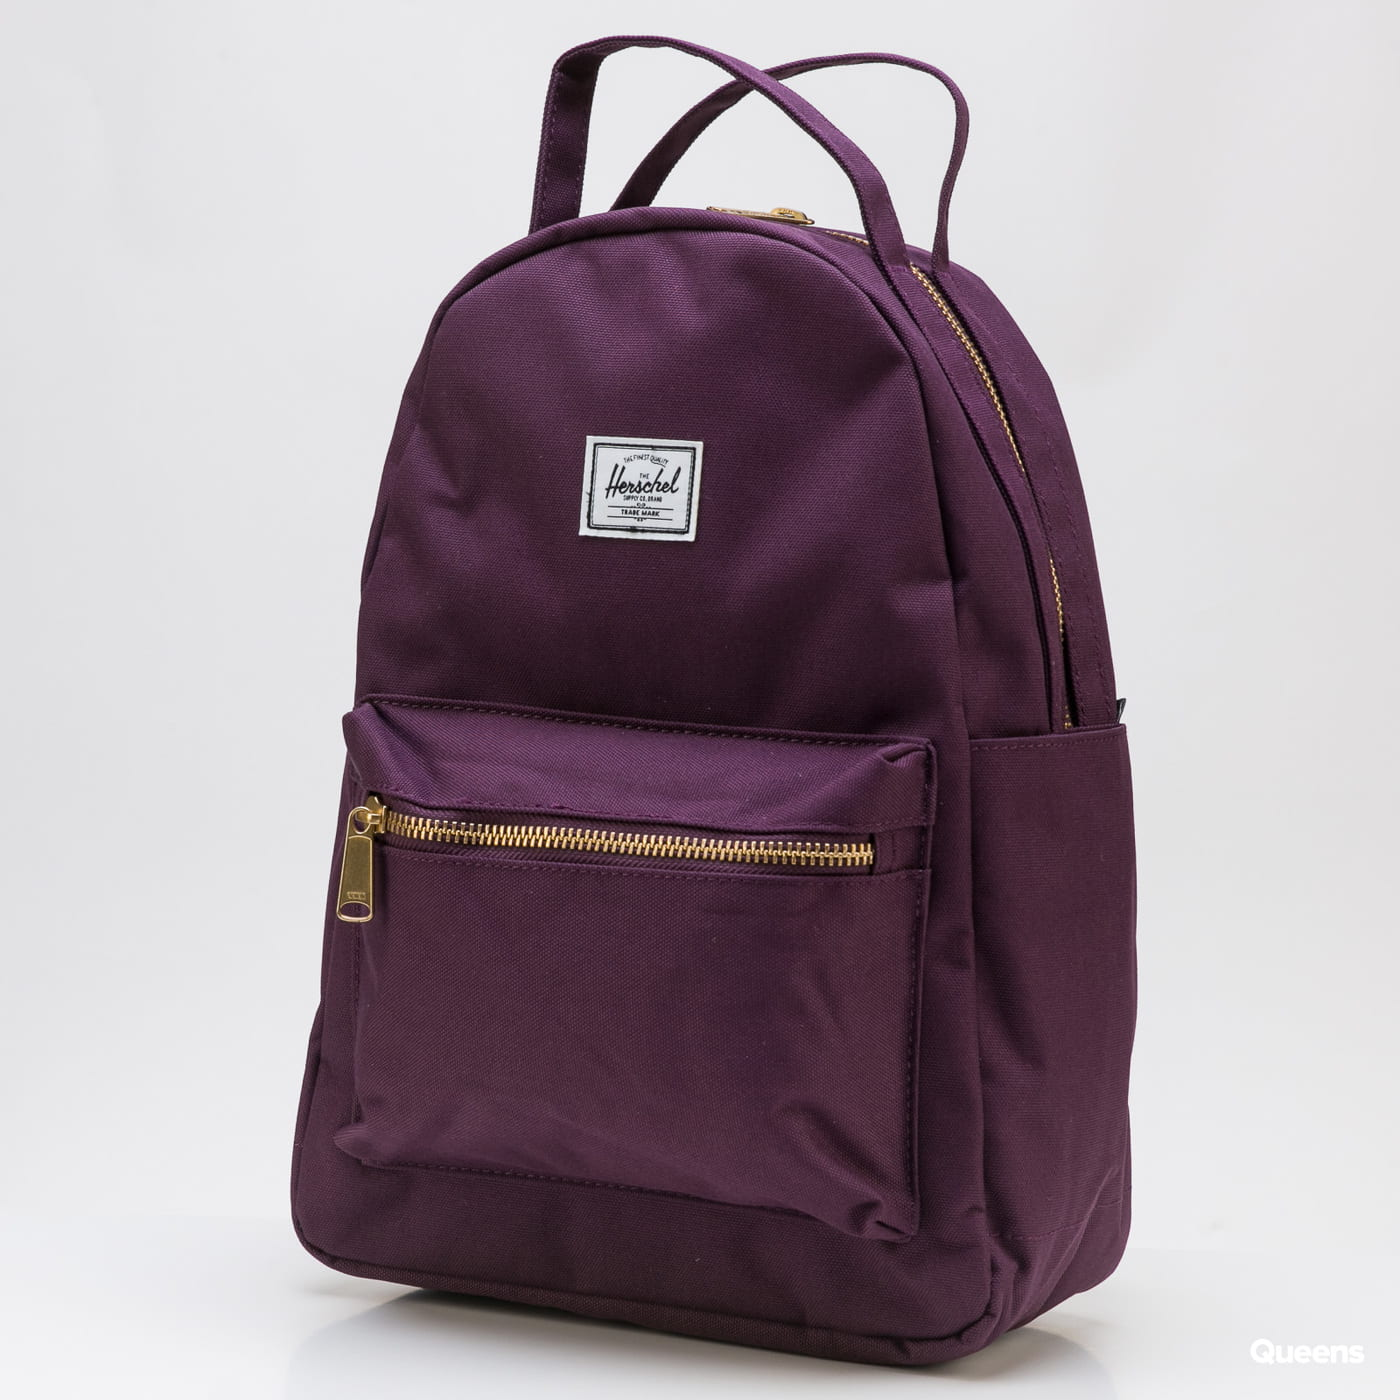 The Herschel Supply CO. A mini backpack from The Herschel Supply CO. in a purple colorway with golden details.- backpack- handle for carrying in hand- adjustable pad A mini backpack from The Herschel Supply CO. in a purple colorway with golden details.- backpack- handle for carrying in hand- adjustable pad